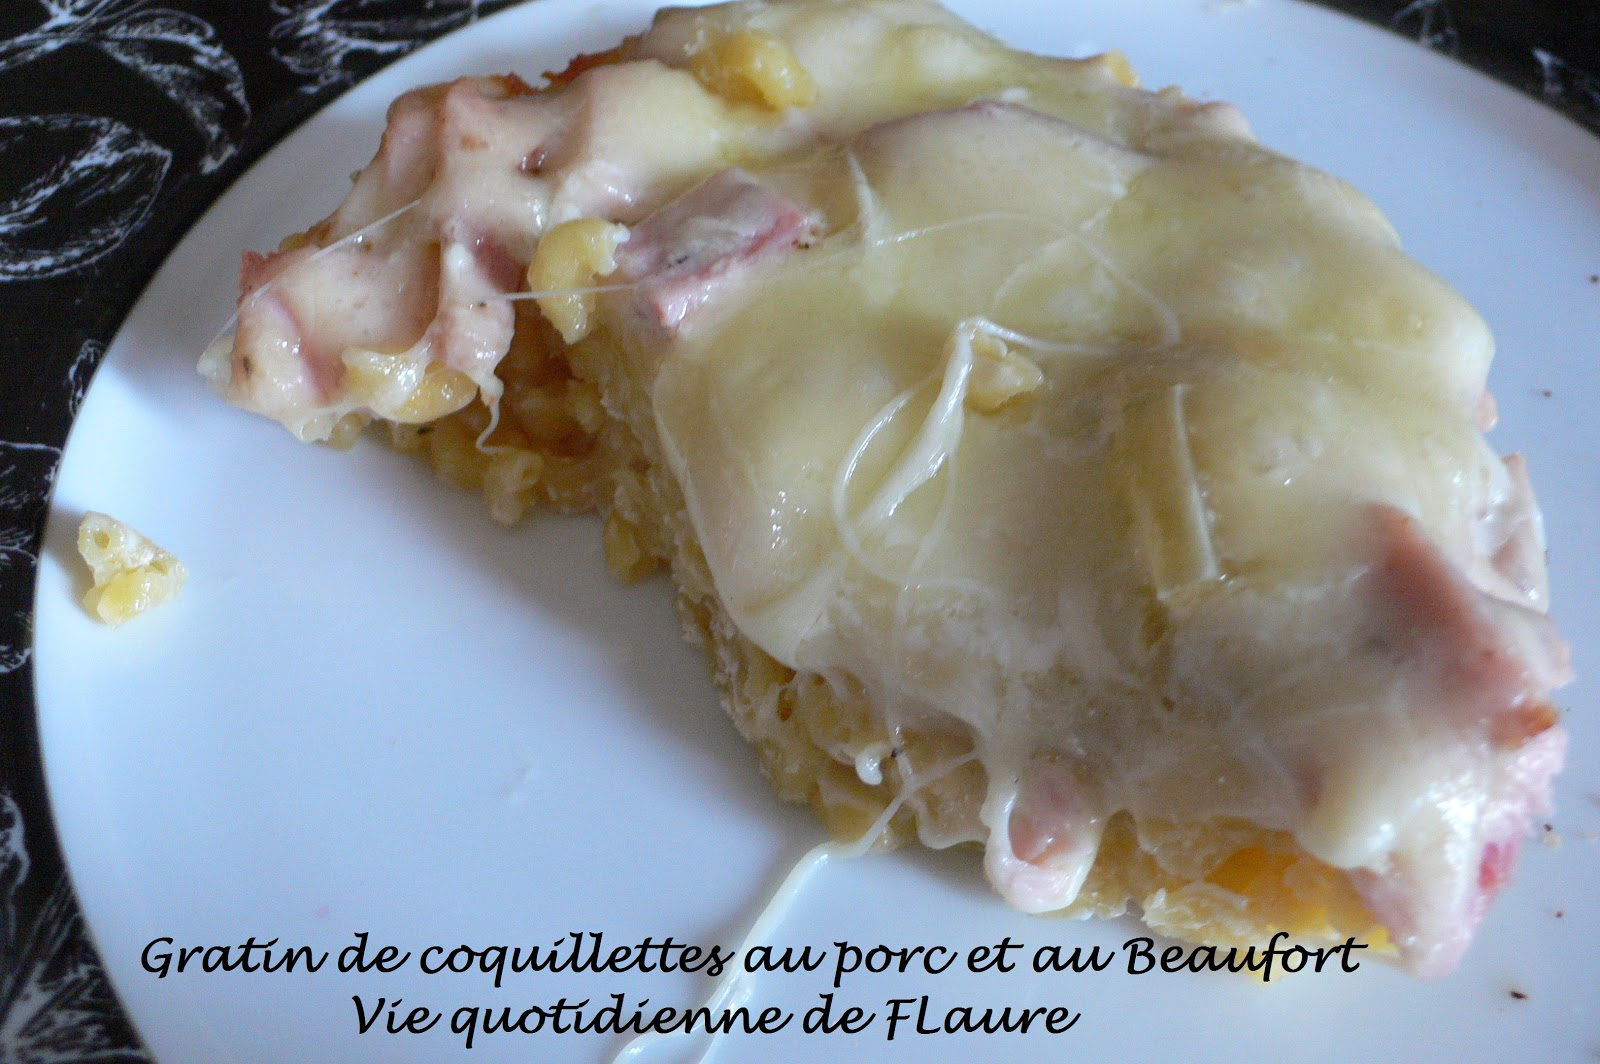 gratin de coquillettes au porc et au beaufort. Black Bedroom Furniture Sets. Home Design Ideas